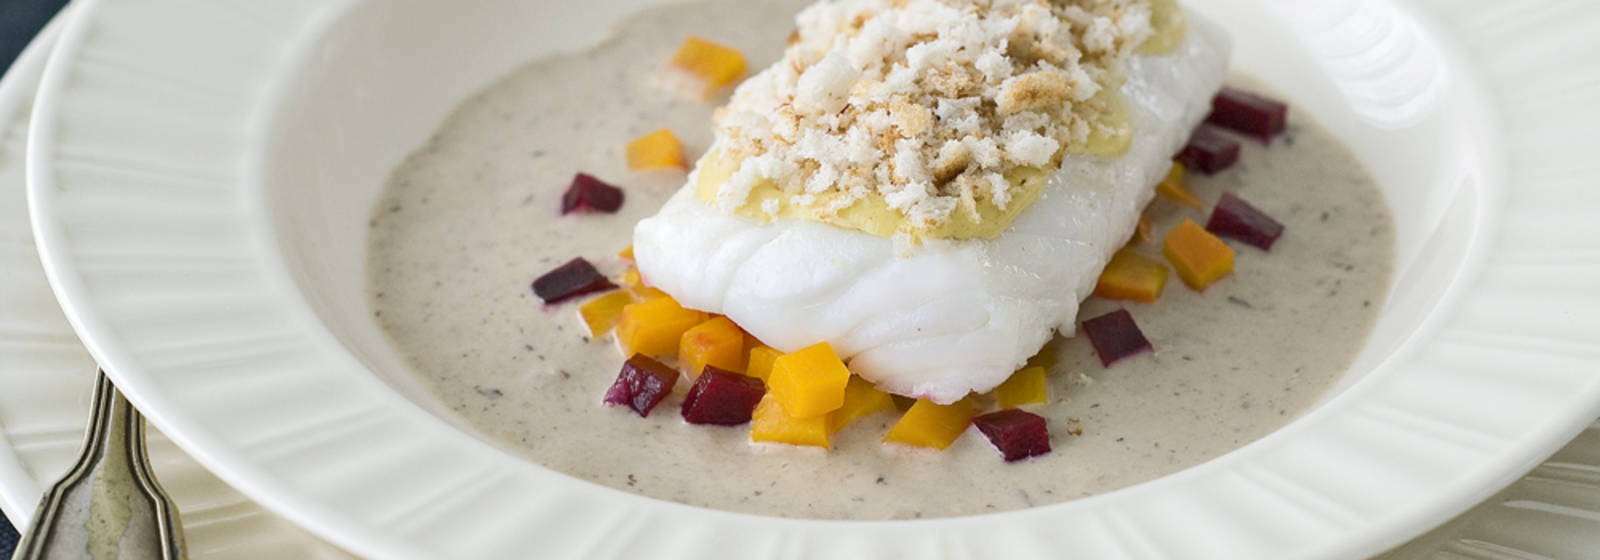 Cod with pumpkin and beetroot in veal cream sauce